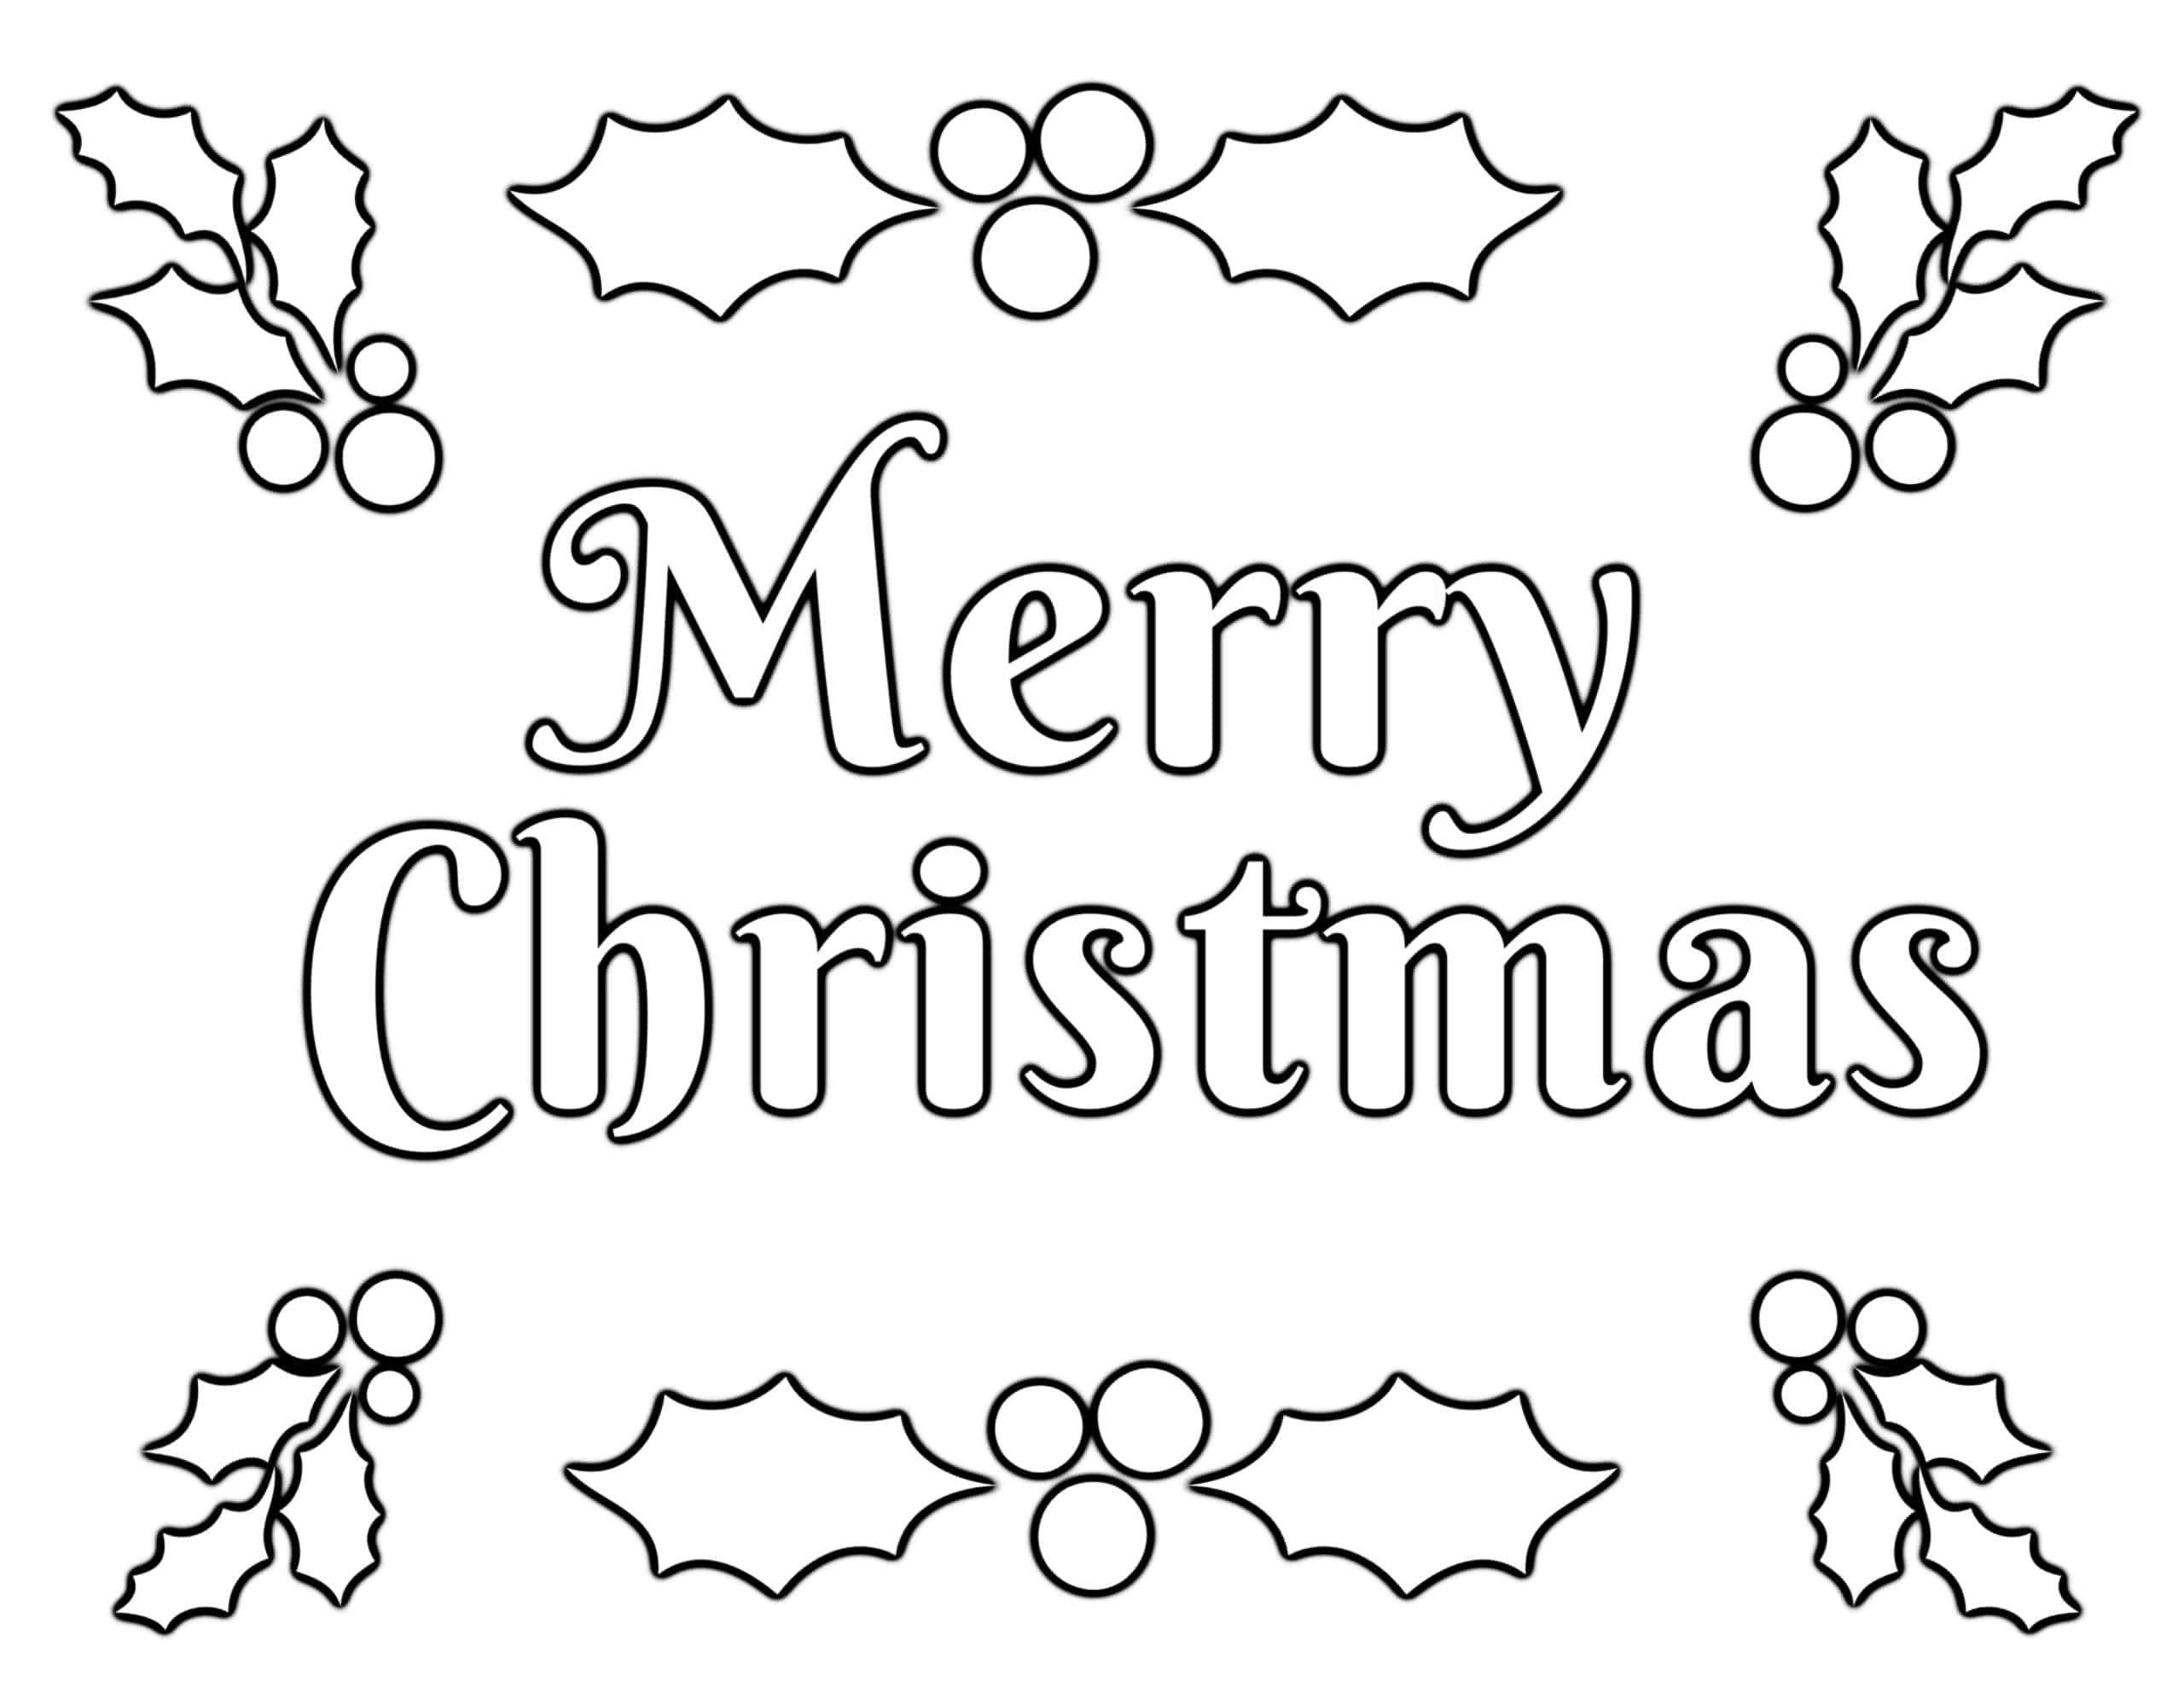 Christmas Printables Coloring Pages Christmas Coloring Pages For Kid Printable Christmas Coloring Pages Merry Christmas Coloring Pages Christmas Coloring Books